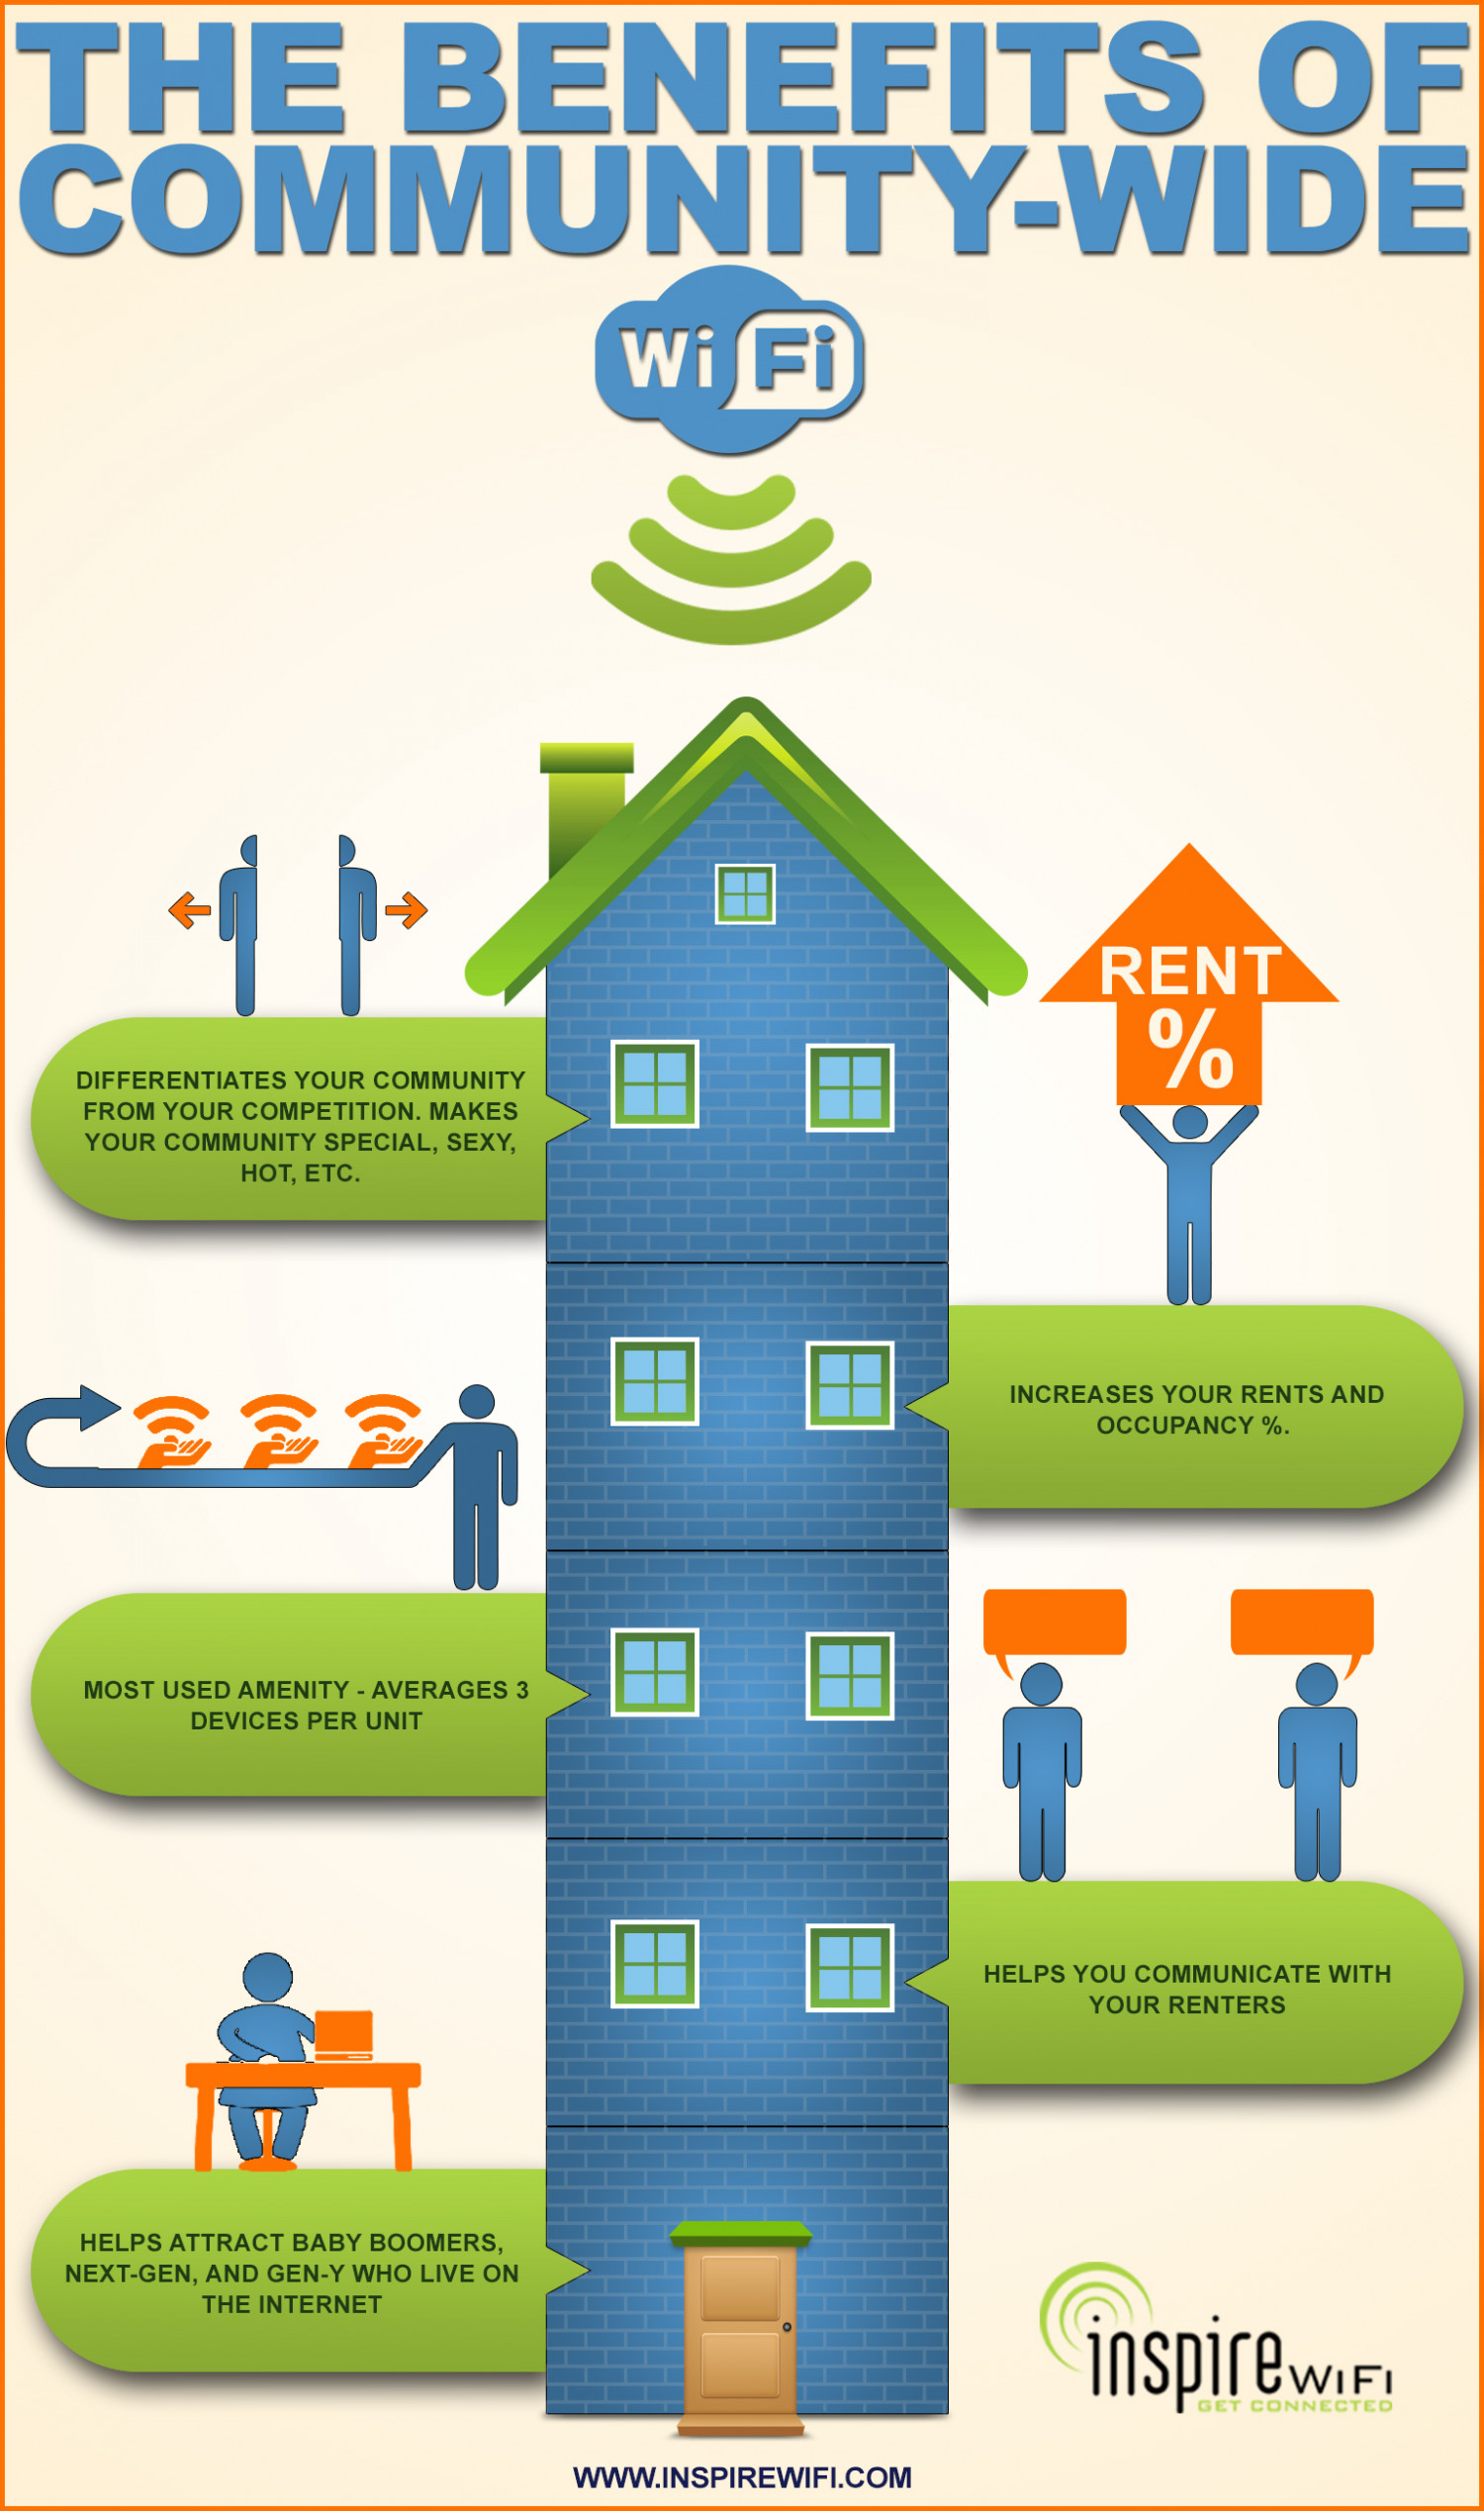 The Benefits of Community-Wide WiFi Infographic